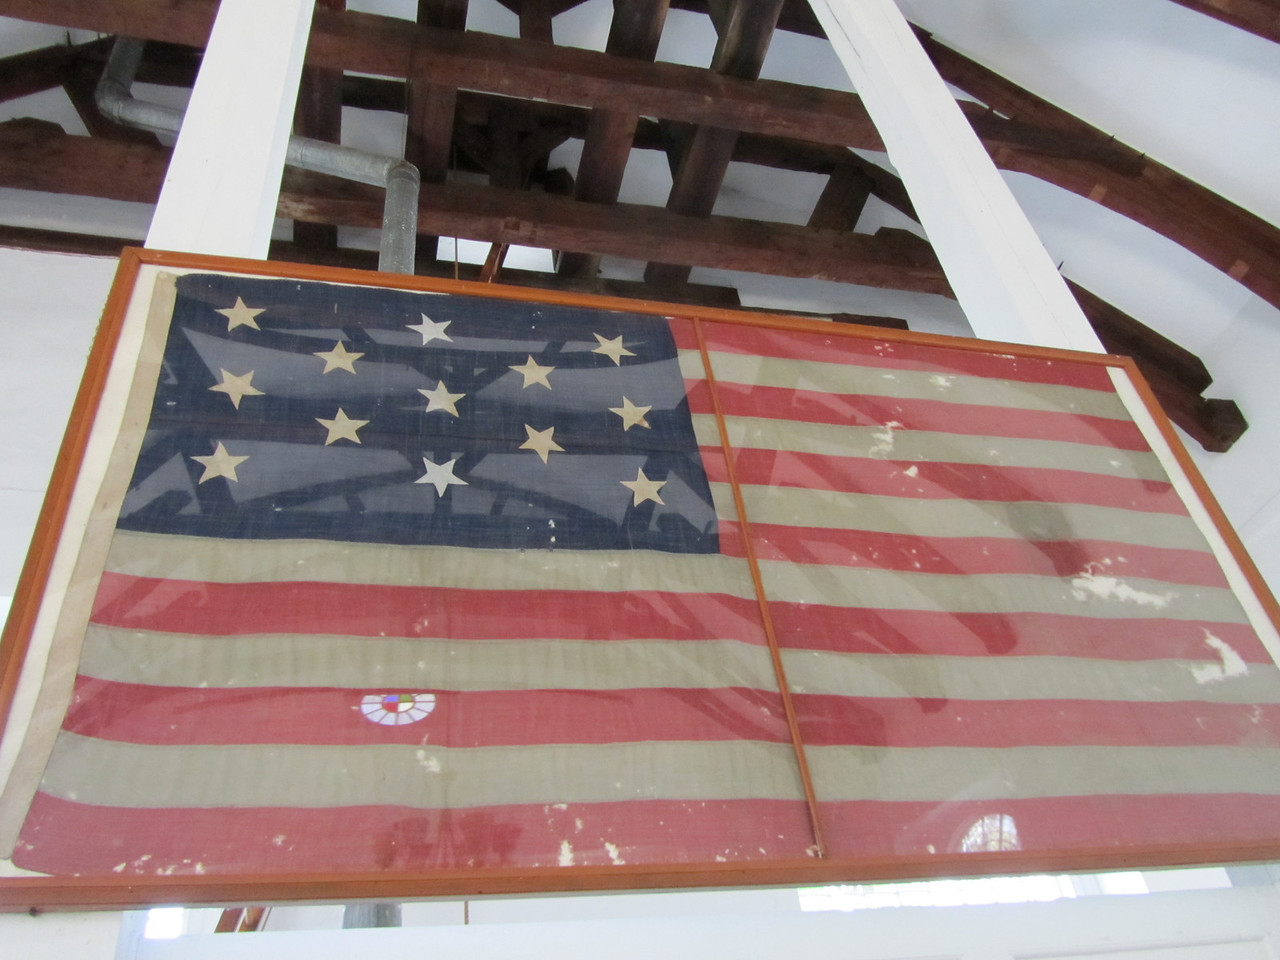 Two interesting points. <br /> 1. This bulding was made without nails. All post and beam with wooden dowels and still standing strong.<br /> 2. This flag was not present when the church was built (since we were still a part of England) but was made when we were just 13 colonies. I have never seen a flag with 13 stars and the stars not be in a circle. Betsy Ross must have made a few prototypes and G. Washington did not like this one.